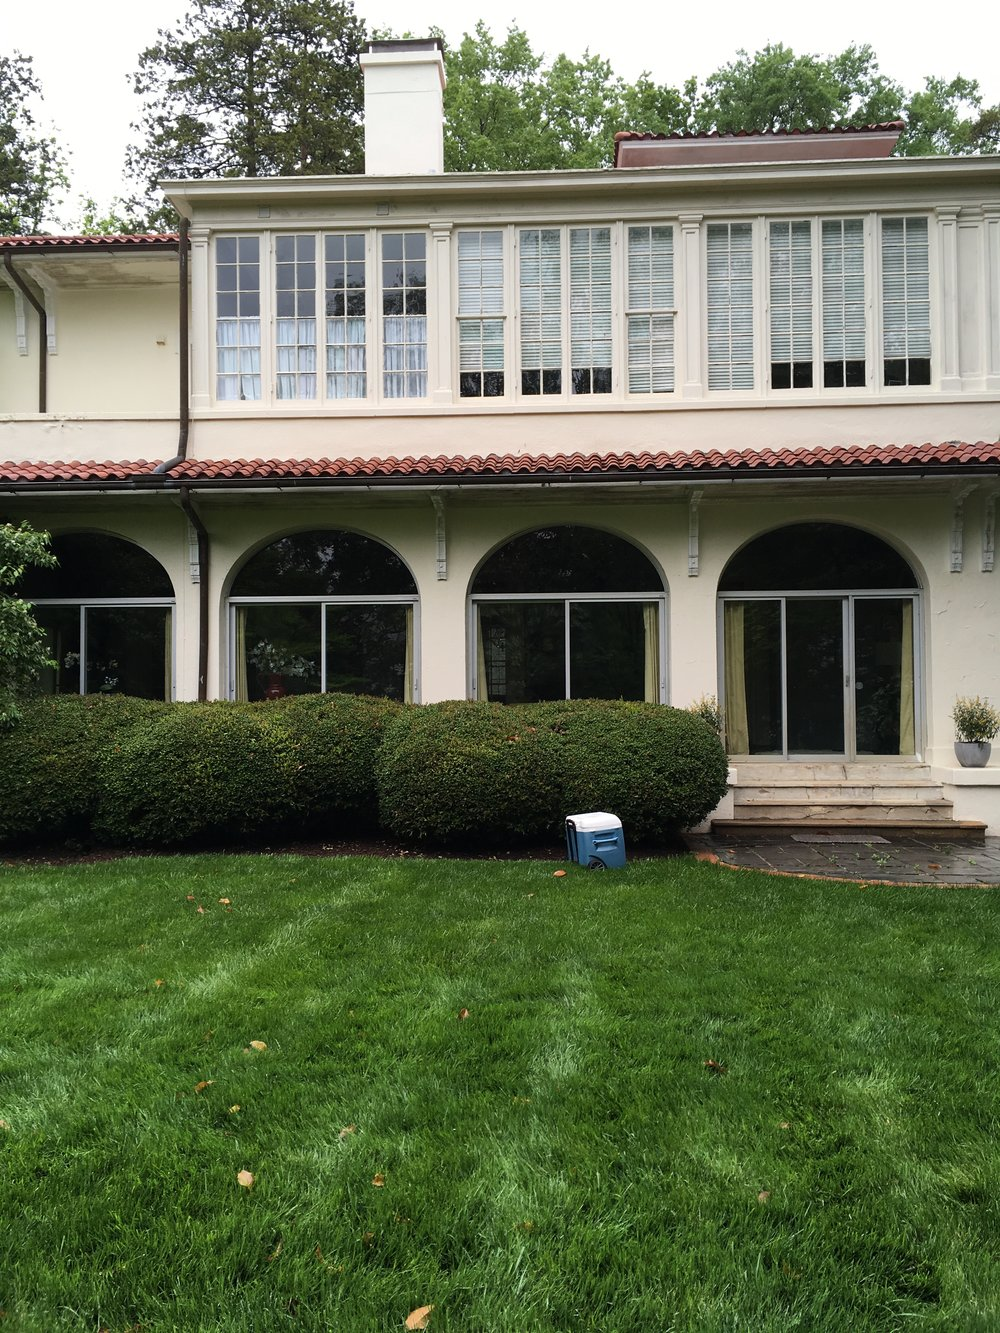 Marcia Fryer Landscape Designs | Before | Baskerville Designed Mediterranean Inspired Home | 1.JPG